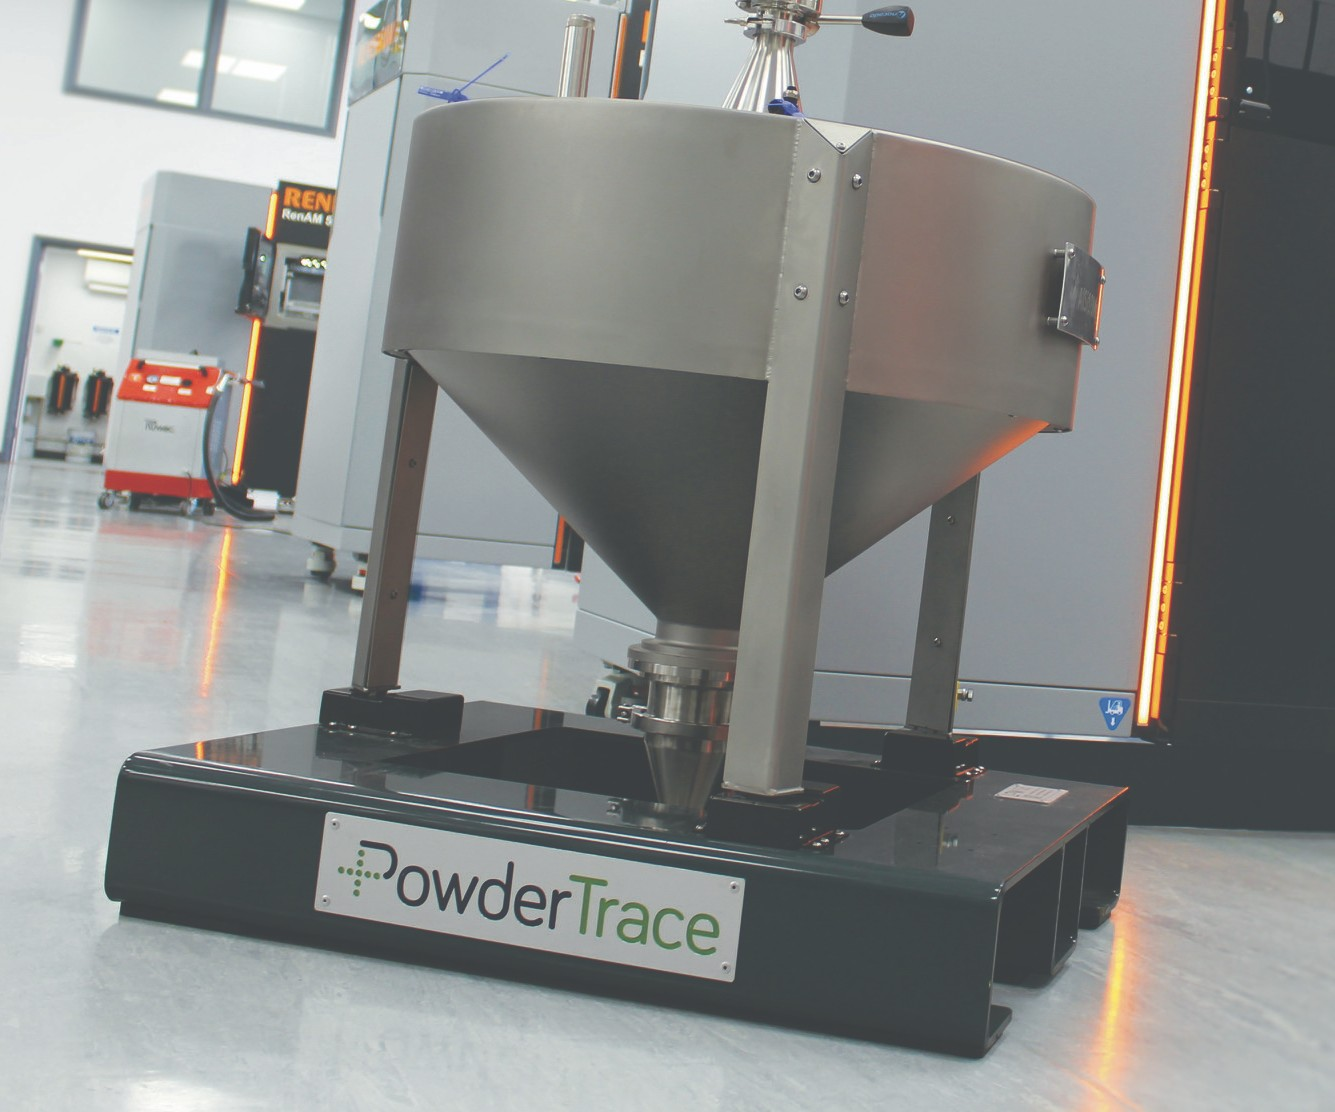 Renishaw will display its PowderTrace hopper at IMTS 2018.